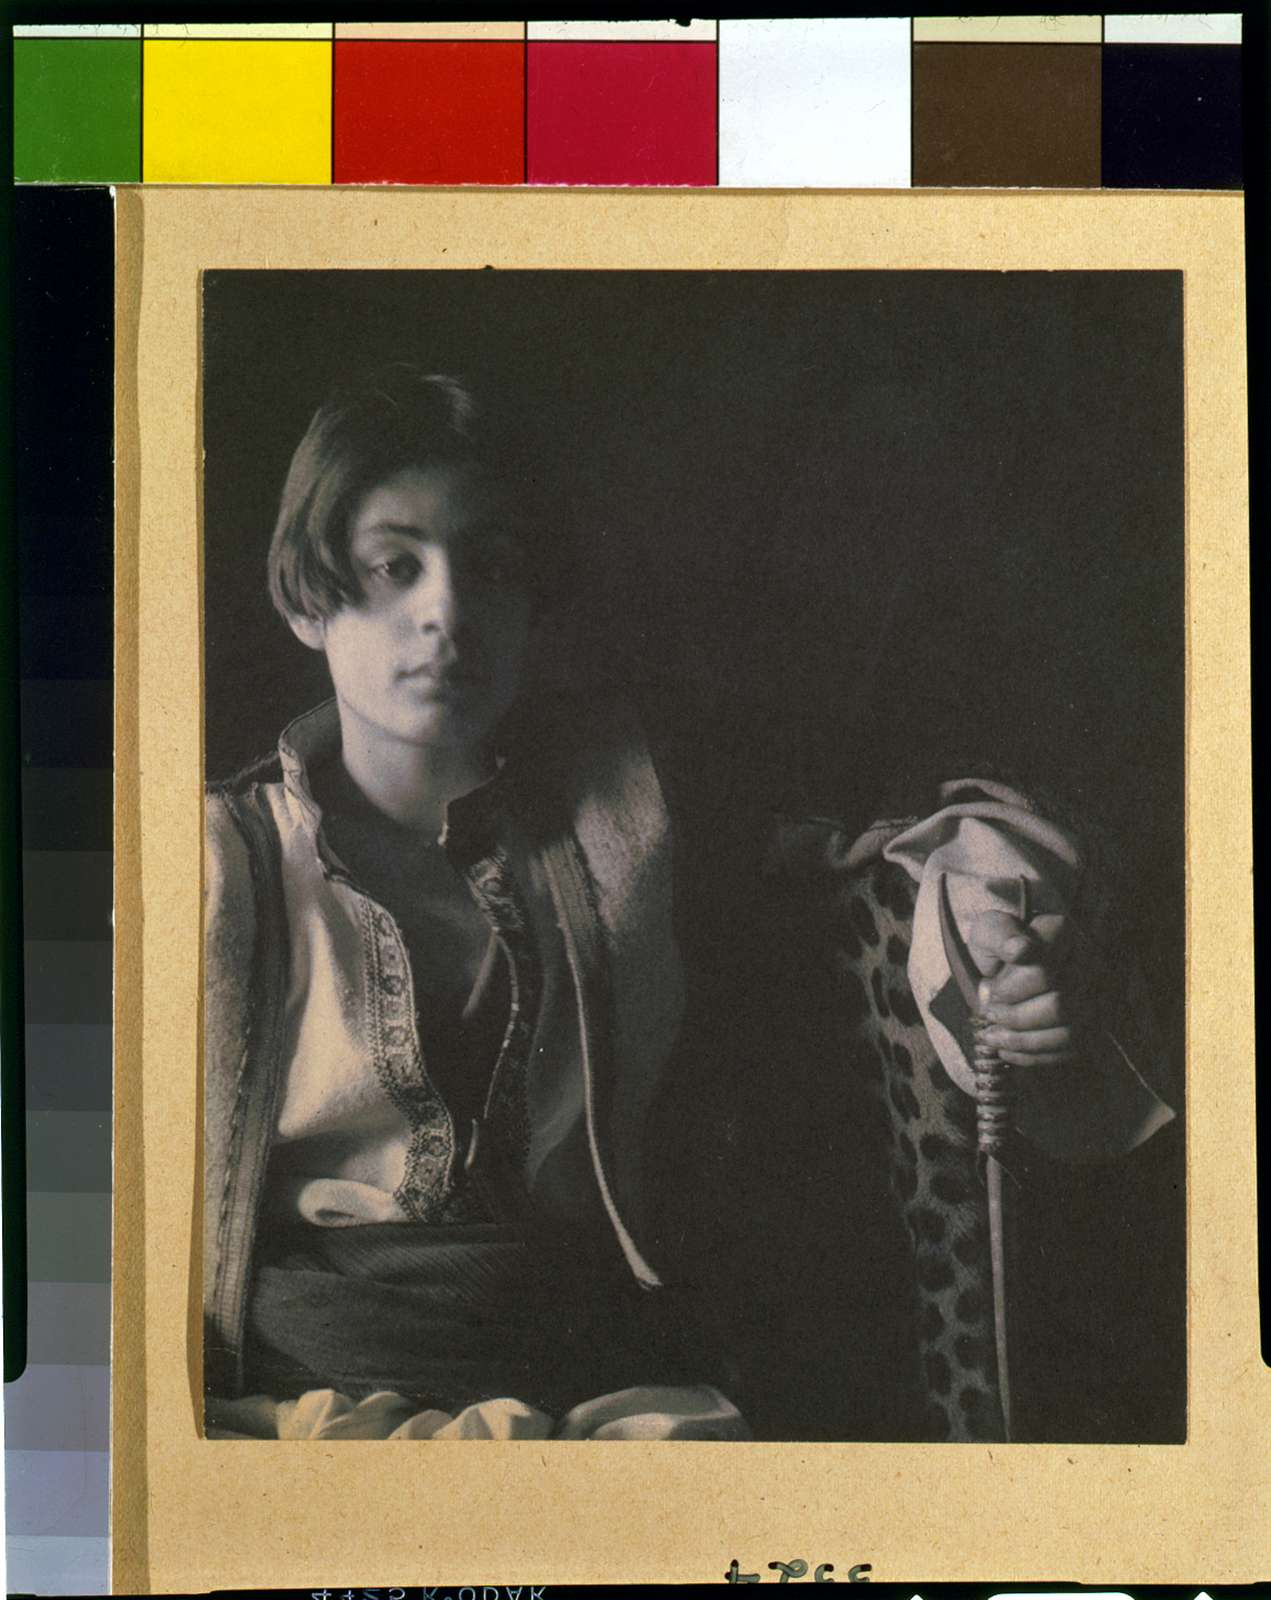 [Kahlil Gibran in Middle Eastern(?) costume with leopard skin and staff, seated]